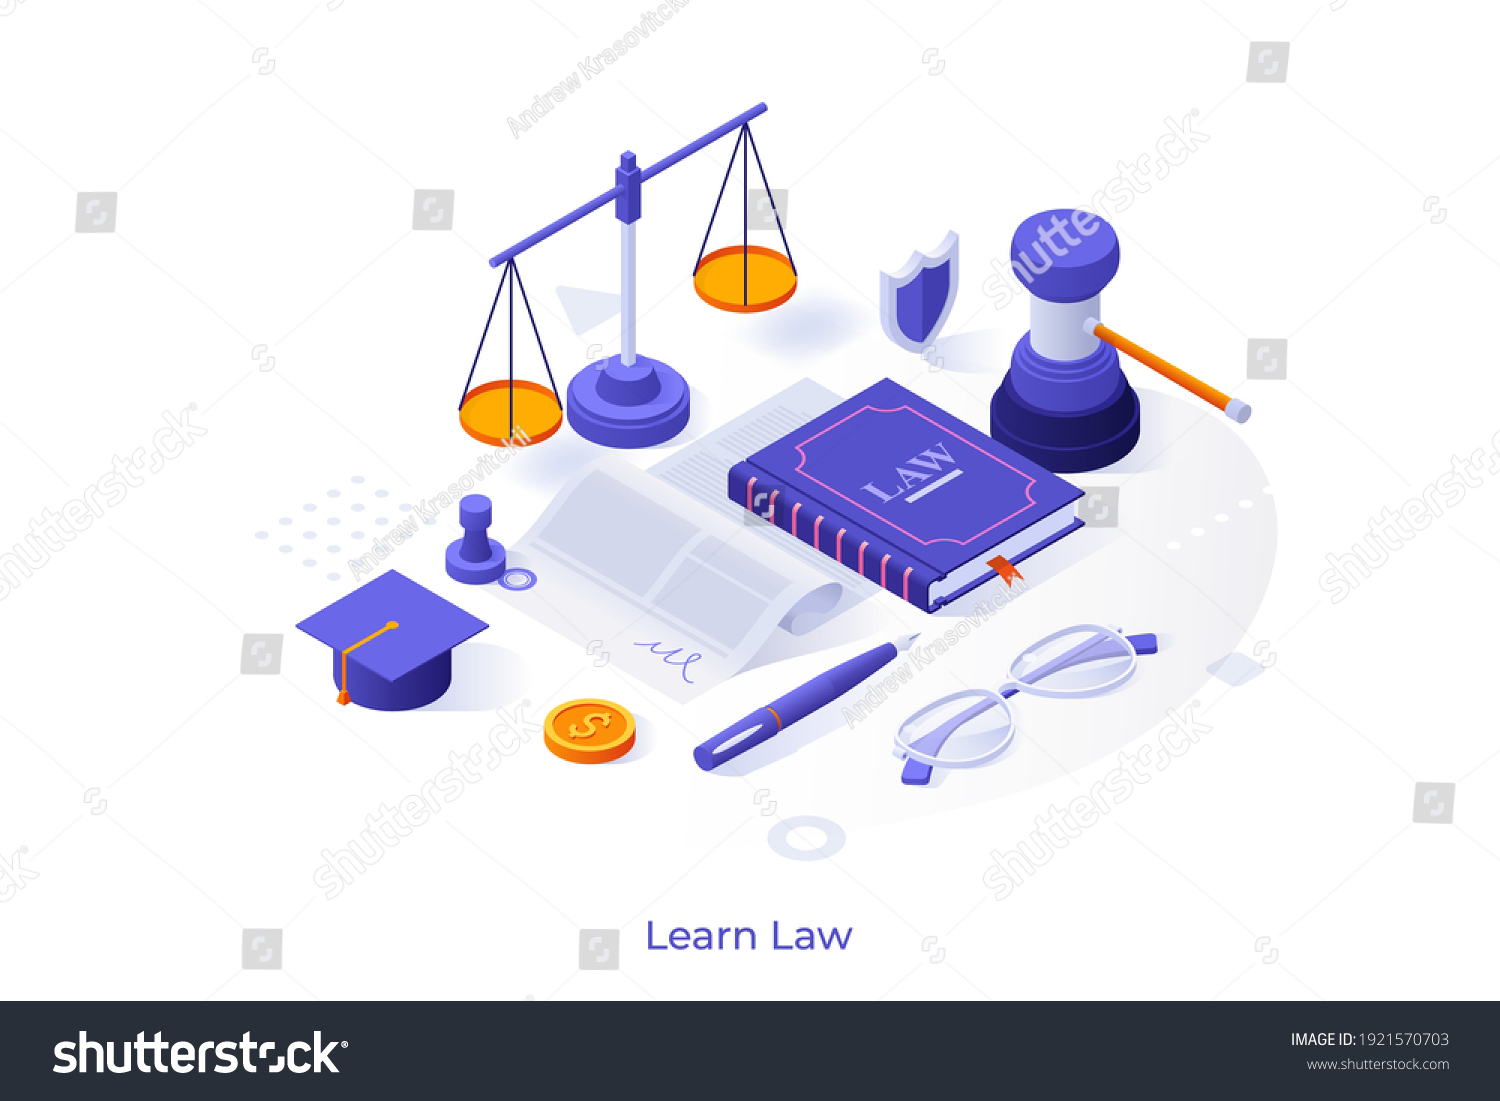 Conceptual template with book, scale, document, gavel, graduation cap. Scene for learning law, studying jurisprudence, legal protection course. Modern isometric vector illustration for website. #1921570703